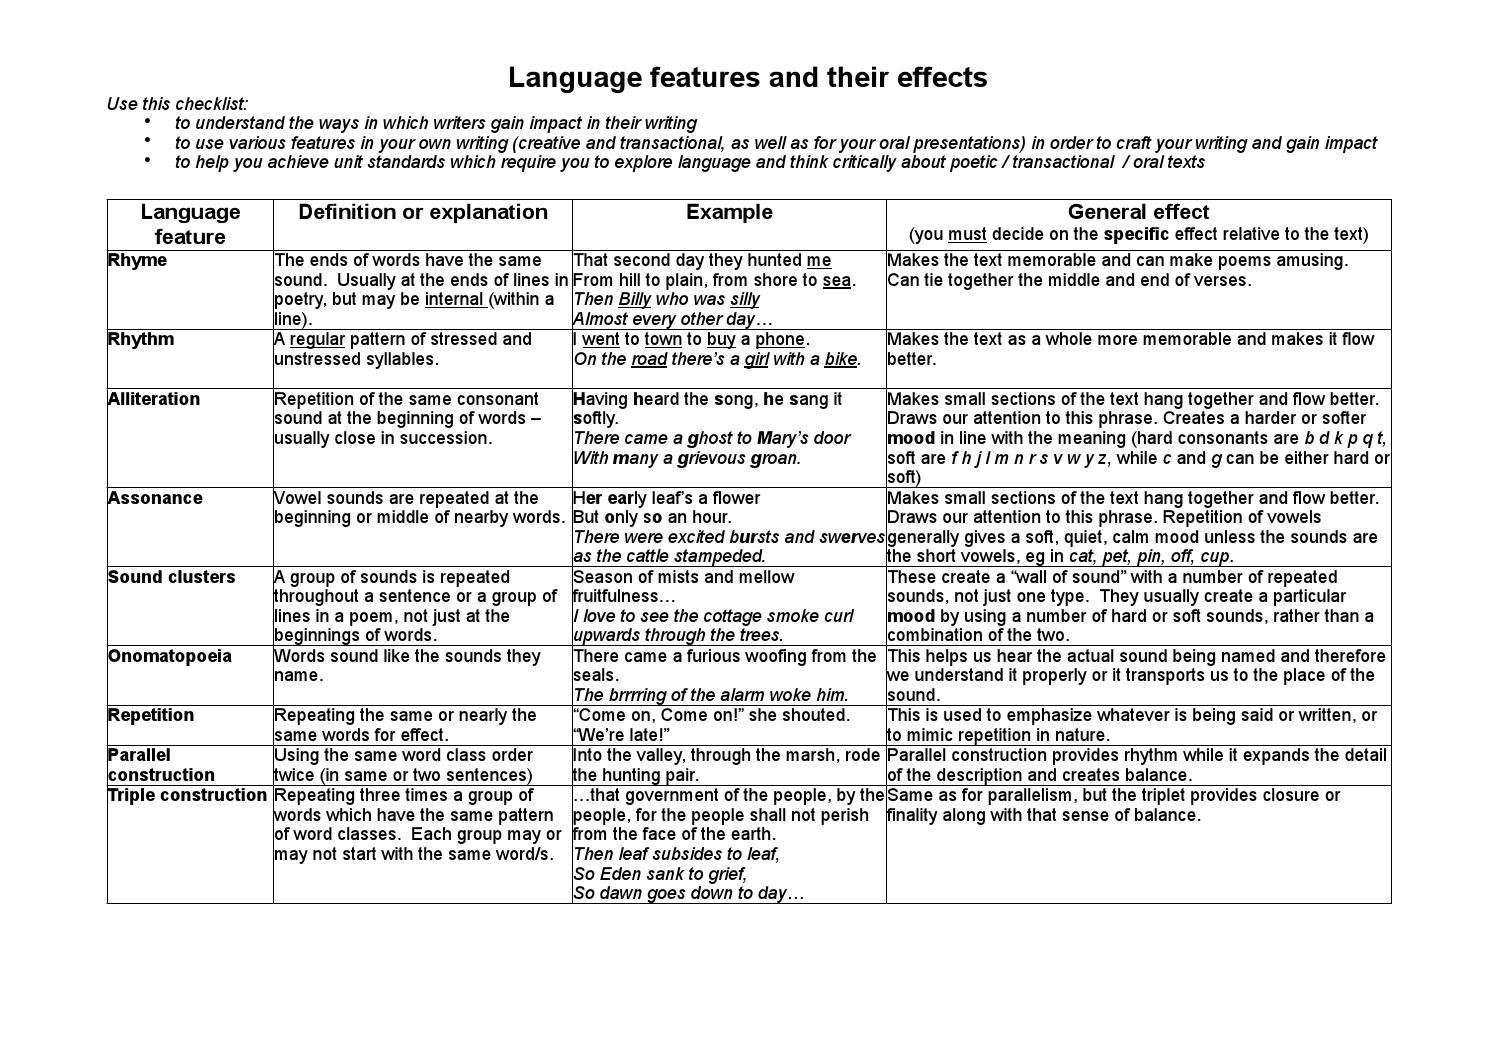 Language Features And Their Effects By LizD Issuu